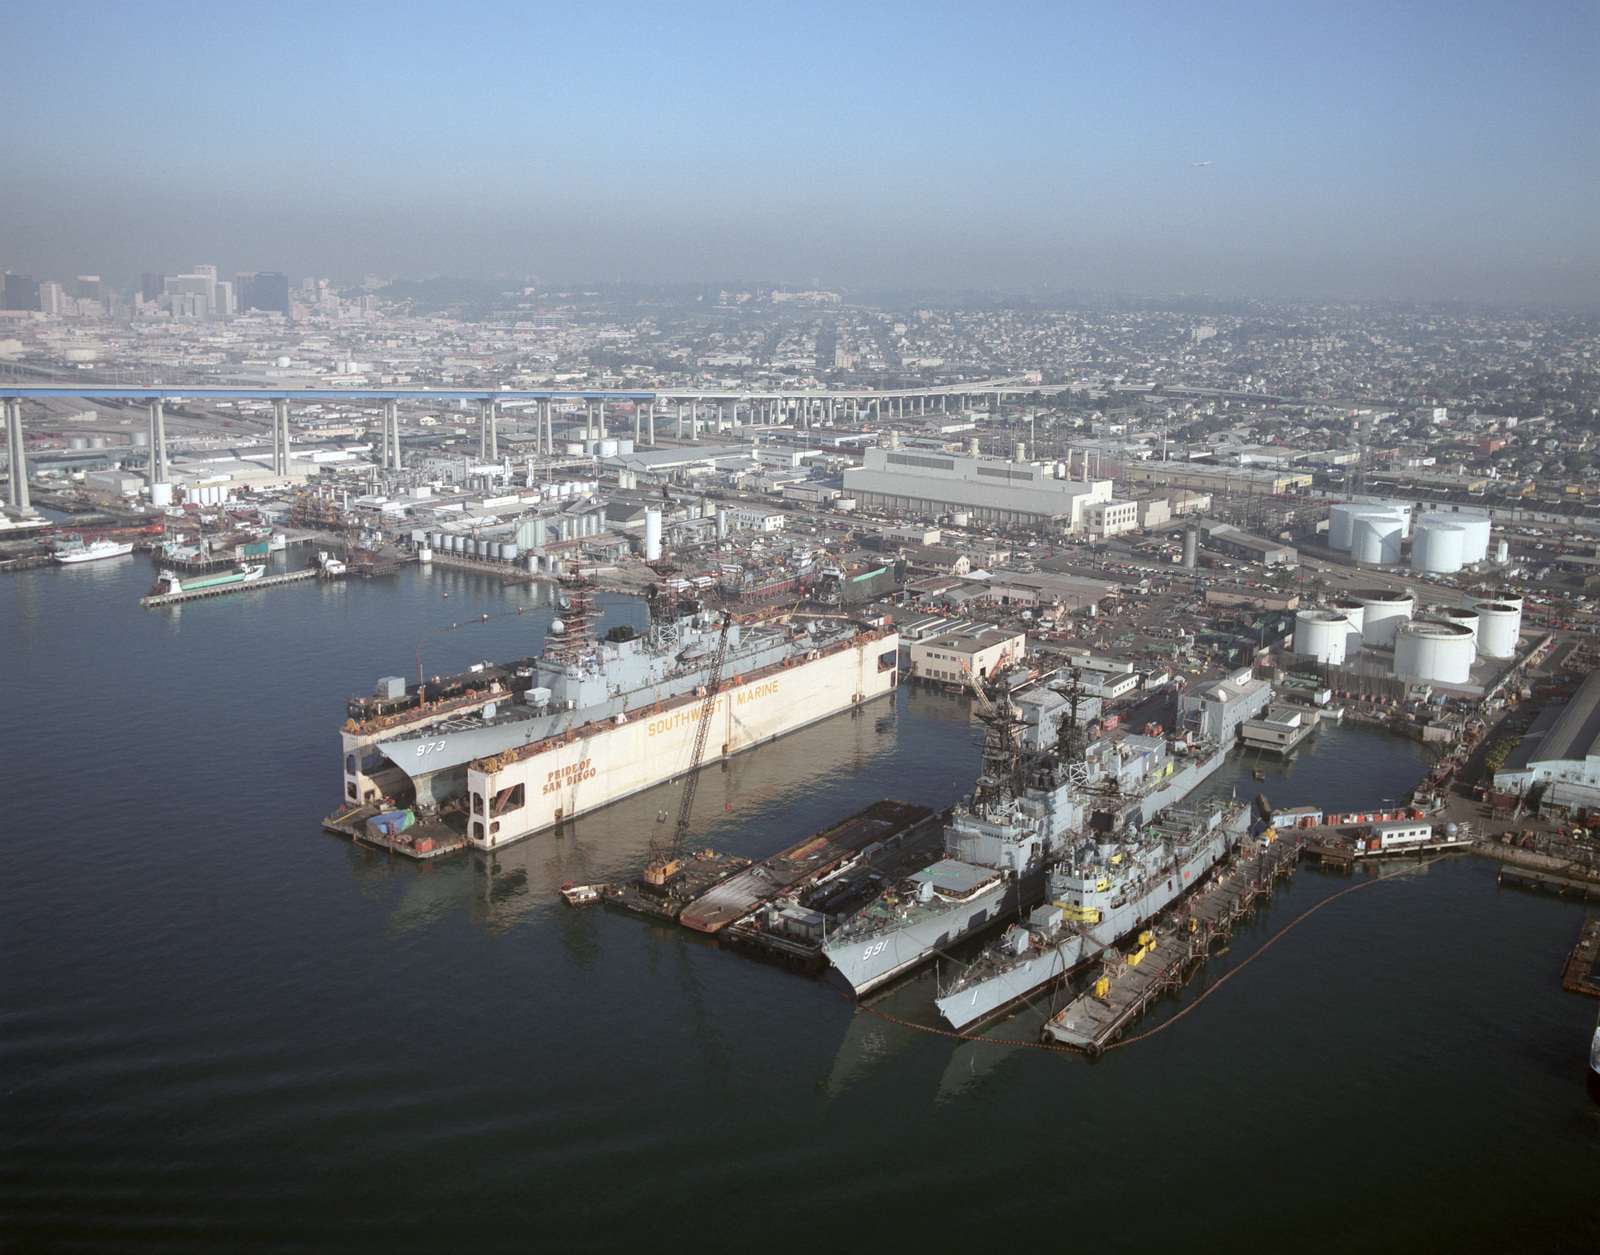 The US Navy (USN) Spruance Class Destroyer USS JOHN YOUNG (DD 973) in dry dock at the Southwest Marine Inc shipyard at San Diego, California (CA). To the portside of the JOHN YOUNG are the USS FIFE (DD 991) and USN Escort Destroyer USS BROOKE (DEG-1/FFG-1). In the background are the Coronado Bridge and the city of San Diego